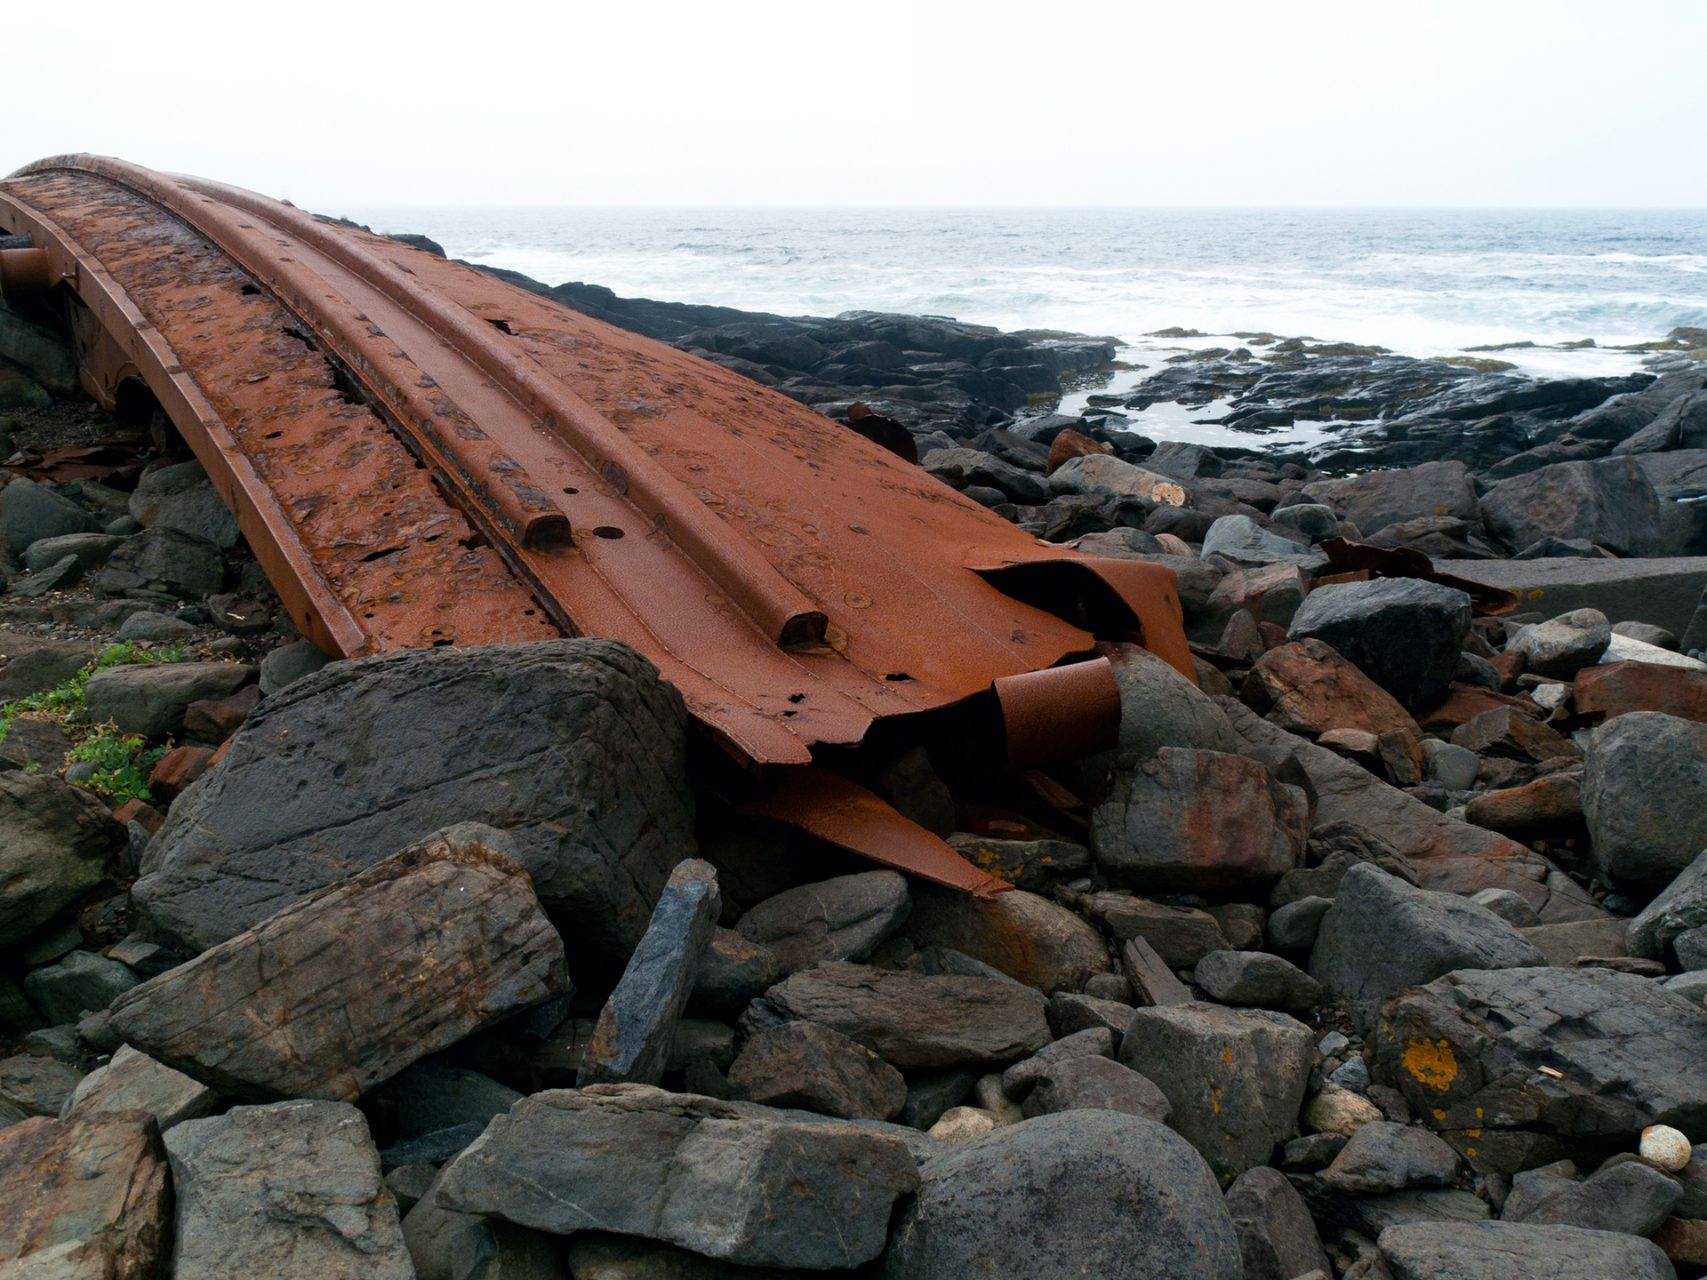 """Shipwreck"", Island of Monhegan, 2010"